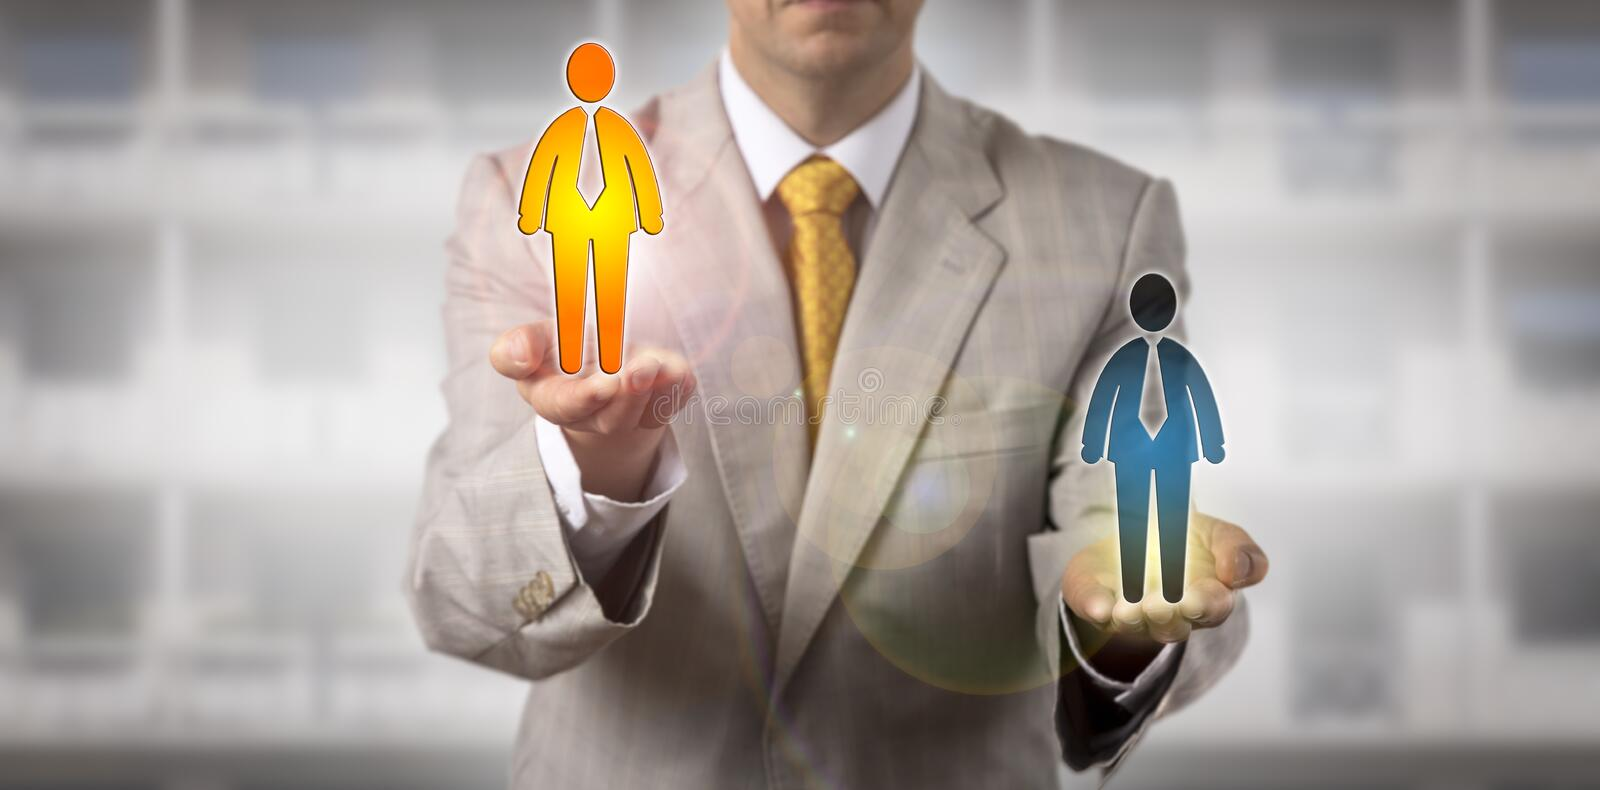 Recruiter Selecting Winner Among Two Candidates stock image